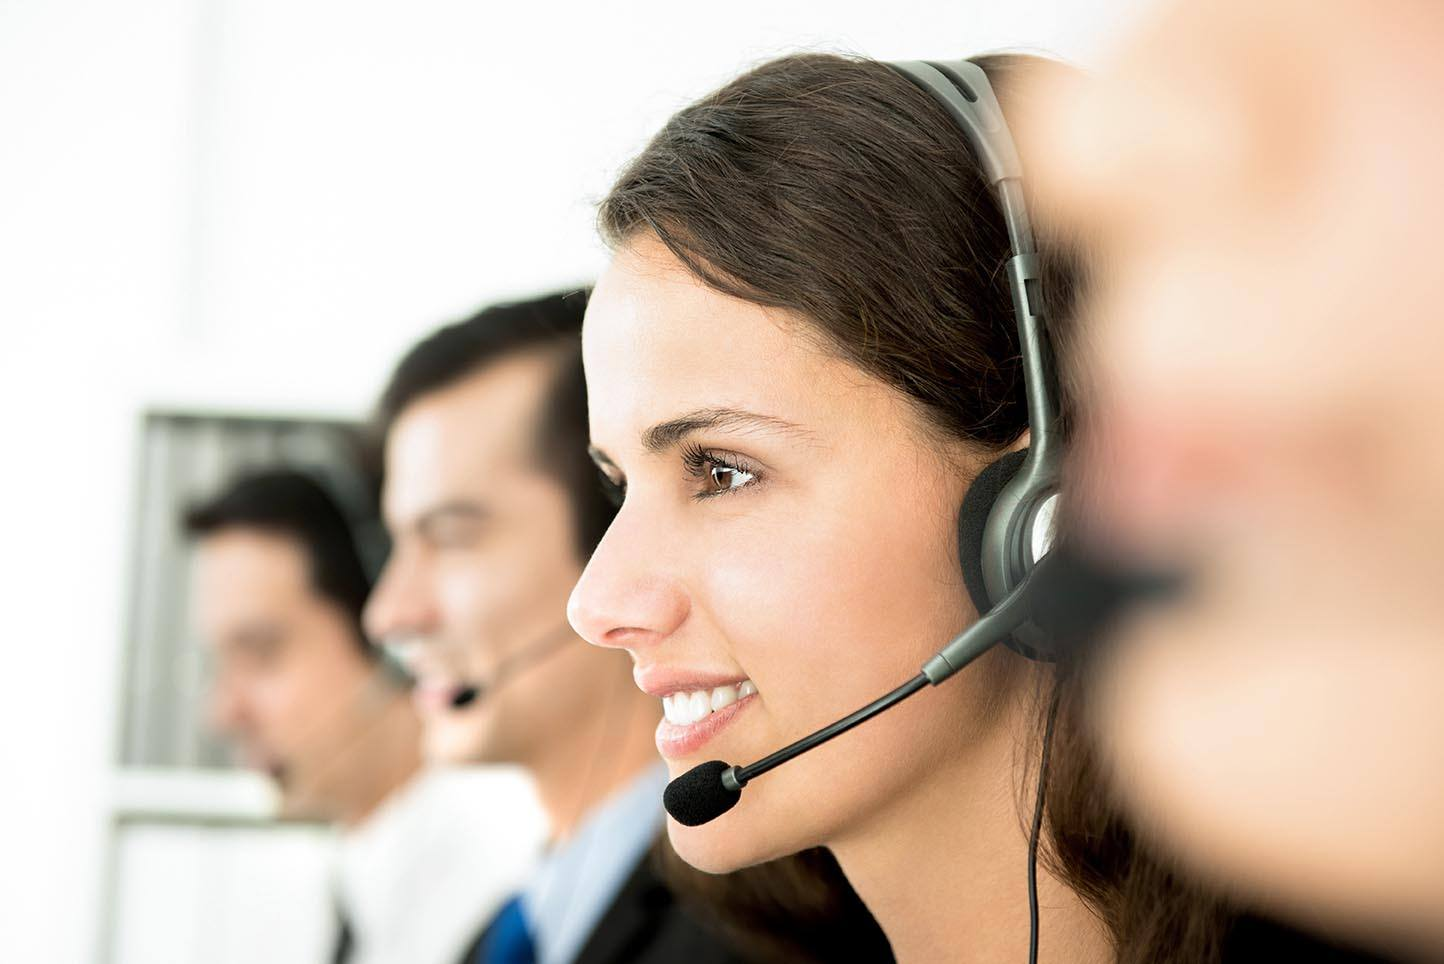 Call centre | Smarter Travel Ltd